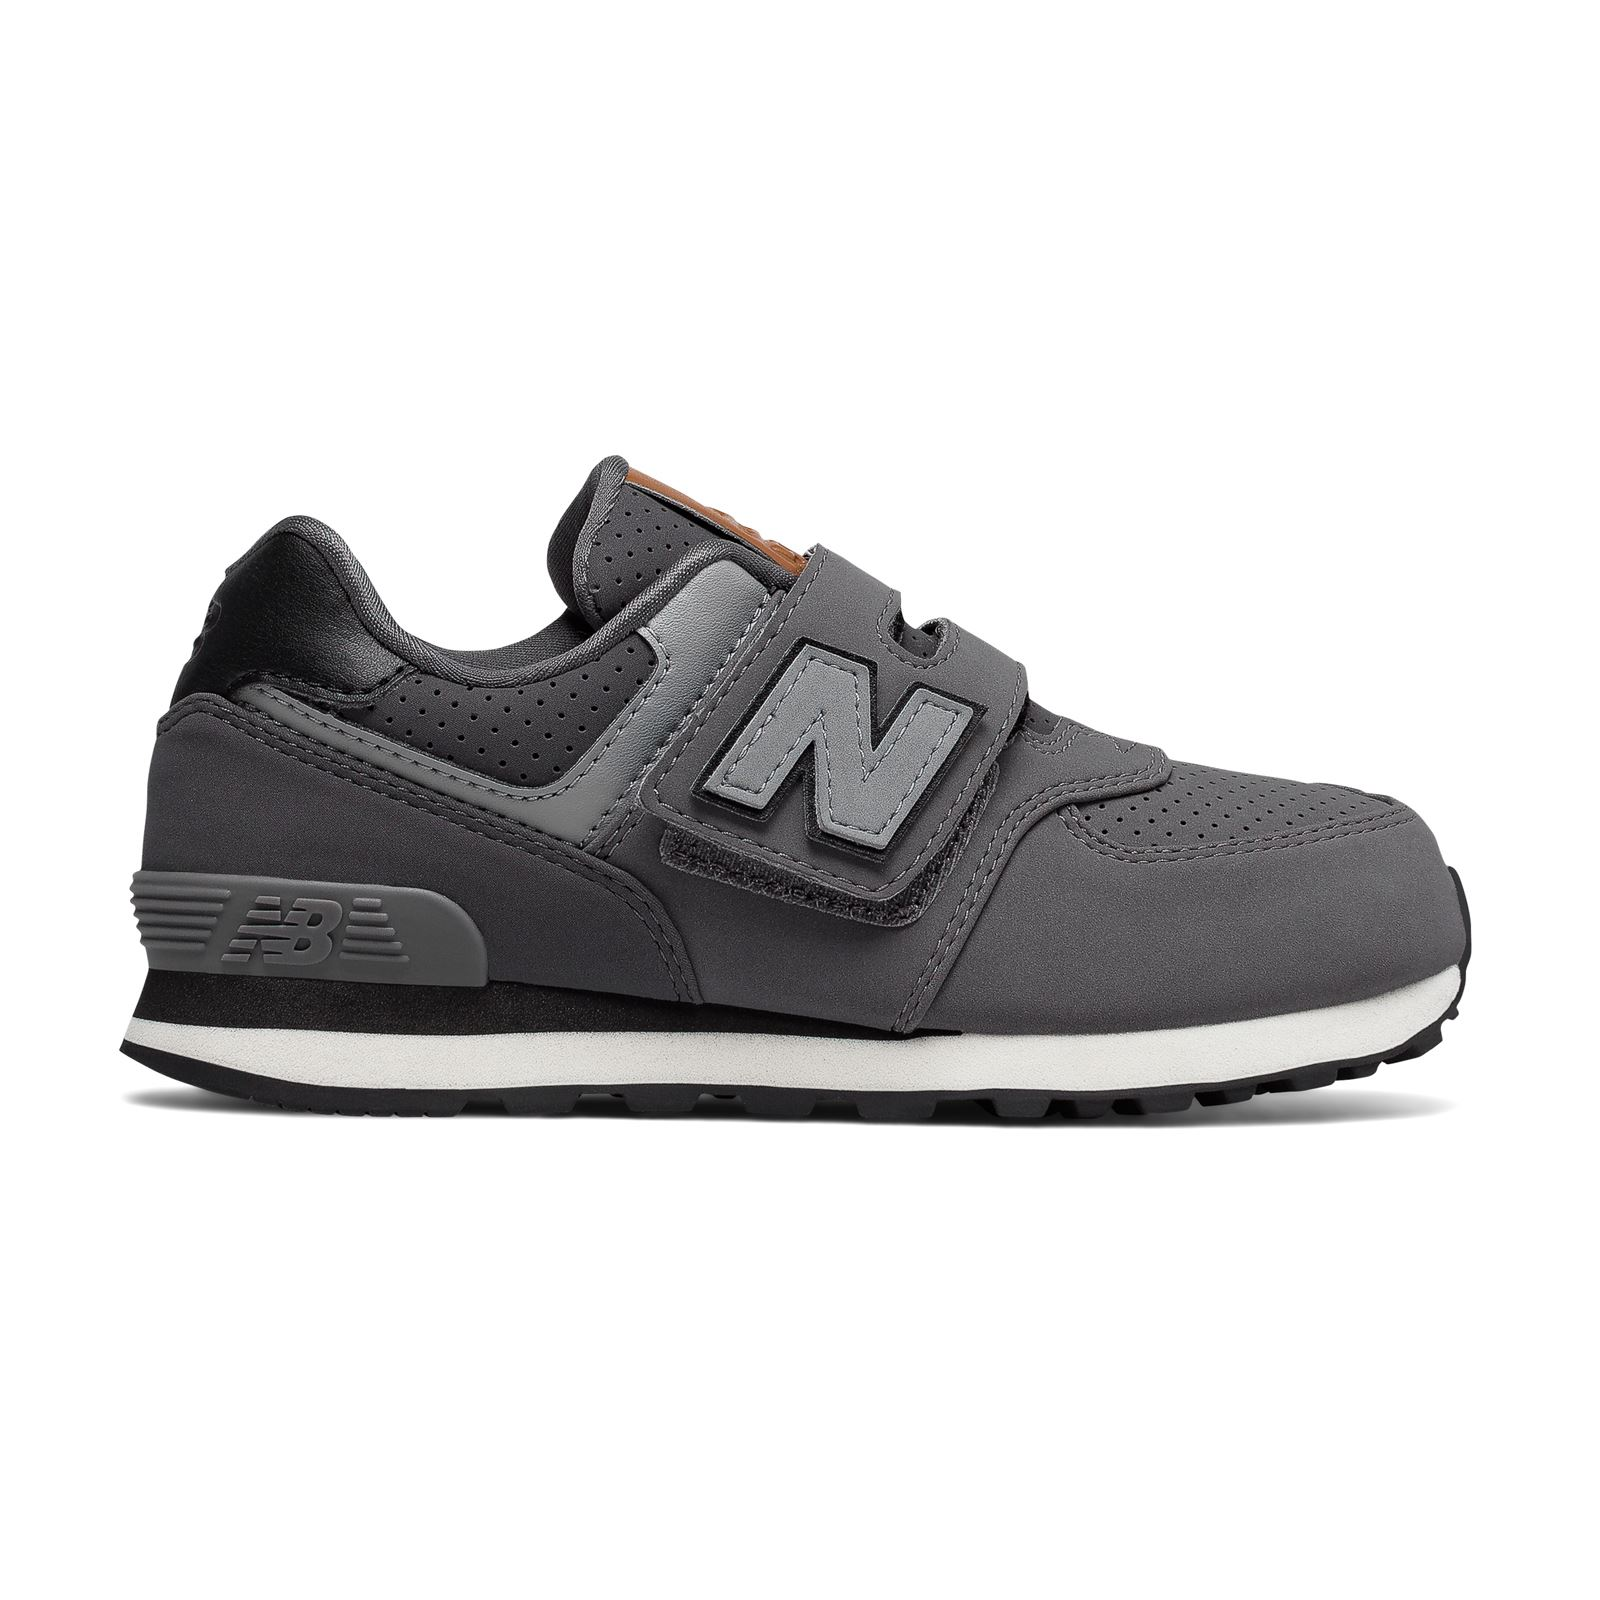 new balance kv574 m turnschuhe sneakers grau brandalley. Black Bedroom Furniture Sets. Home Design Ideas